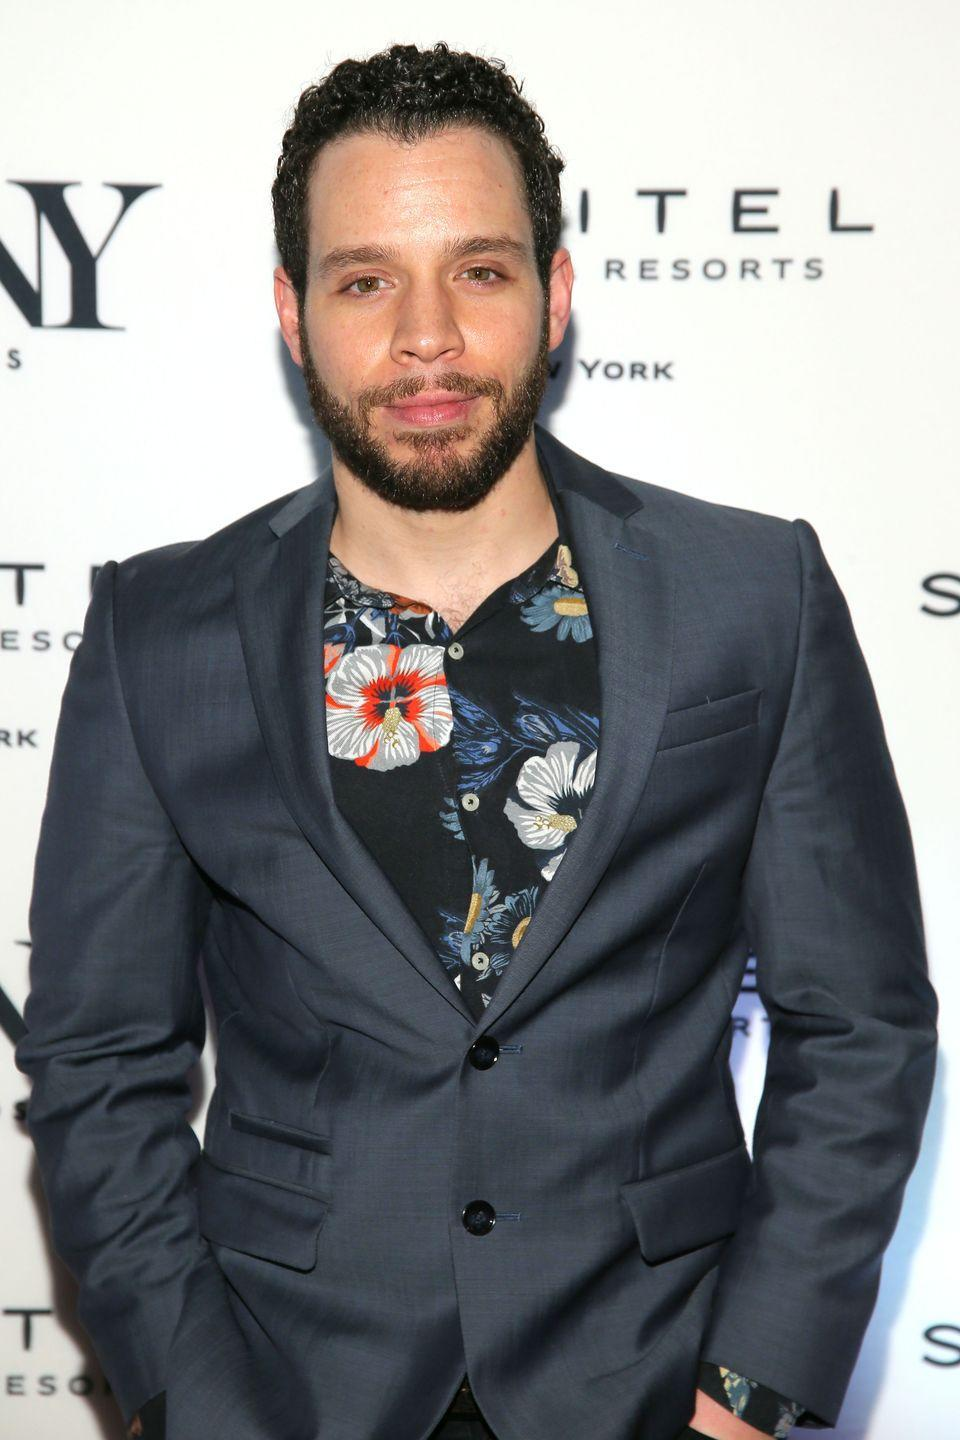 <p>Similar to Lopez, de Jesús's projects have been few and far in-between. However, his next role might be his next biggest break (aside from portraying Sonny in the 2008 musical). de Jesús is returning to work with Miranda on <em>tick, tick... BOOM</em>, an upcoming Netflix musical film directed by Miranda that tells the autobiographical story of playwright Johnathon Larson. </p>